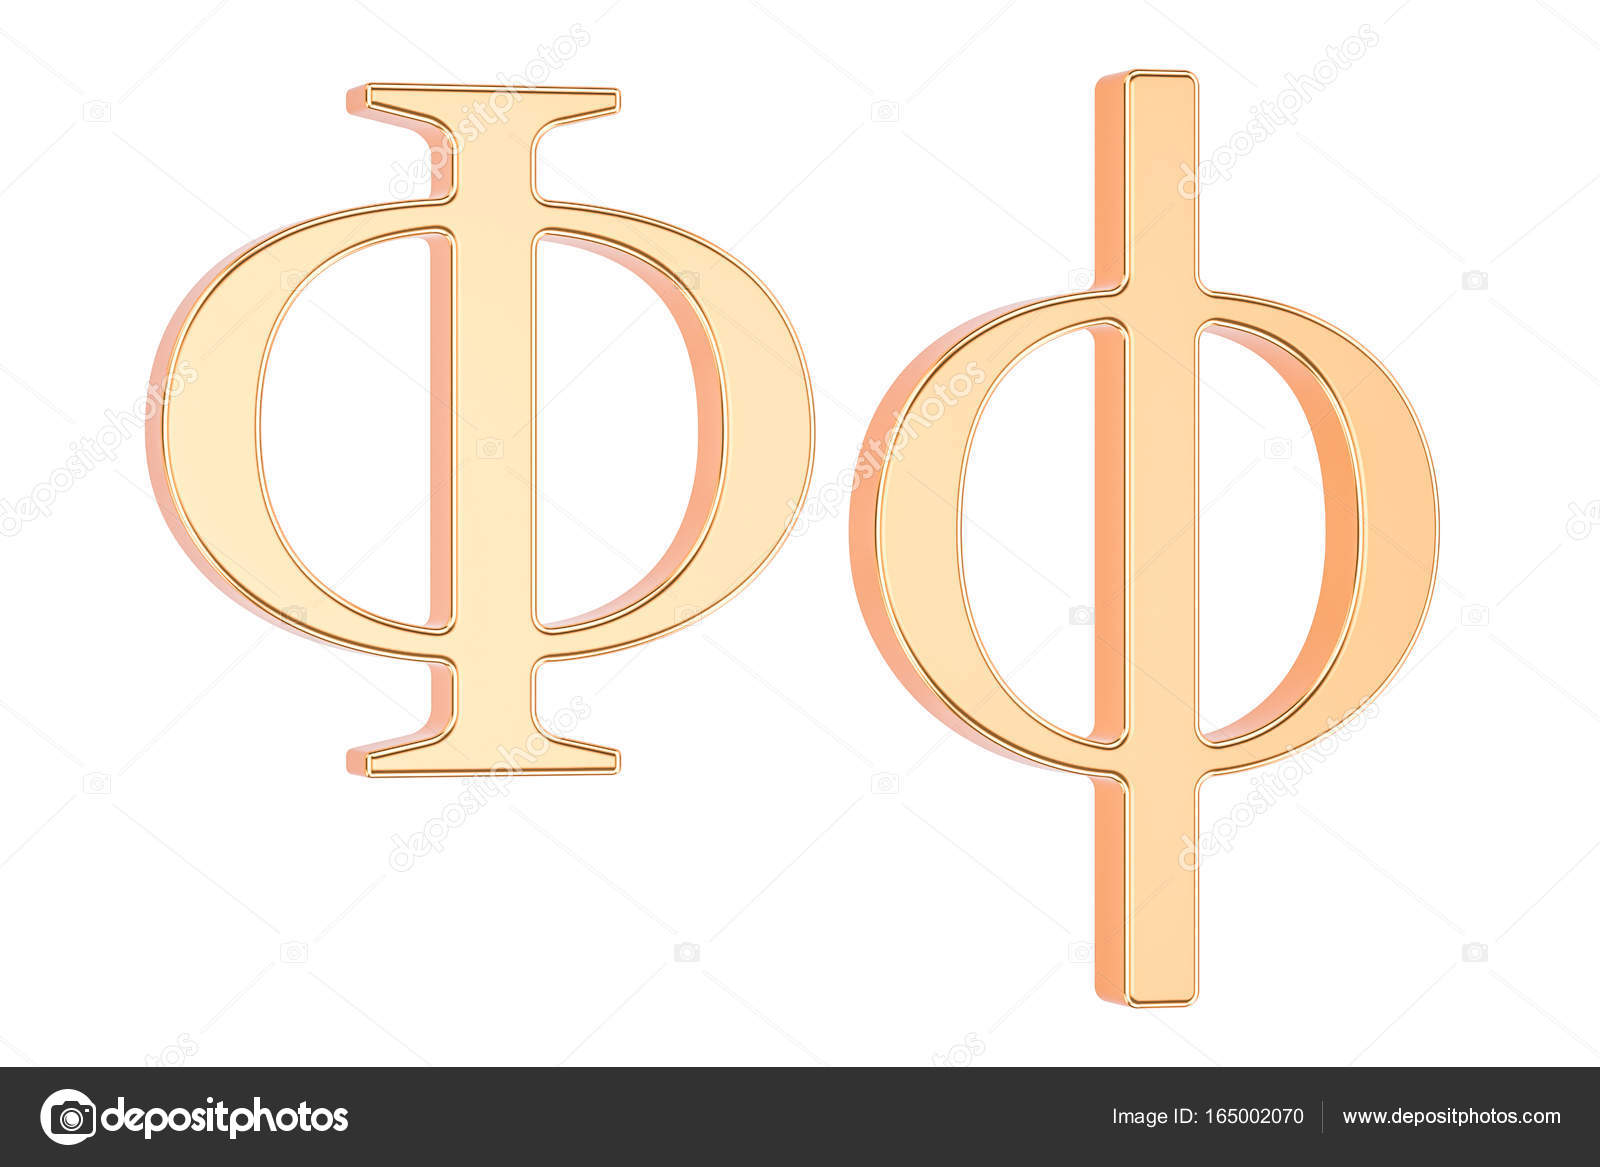 depositphotos_165002070-stock-photo-golden-greek-letter-phi-3d  D Phi Paper Letter Template on printable box, cut out,